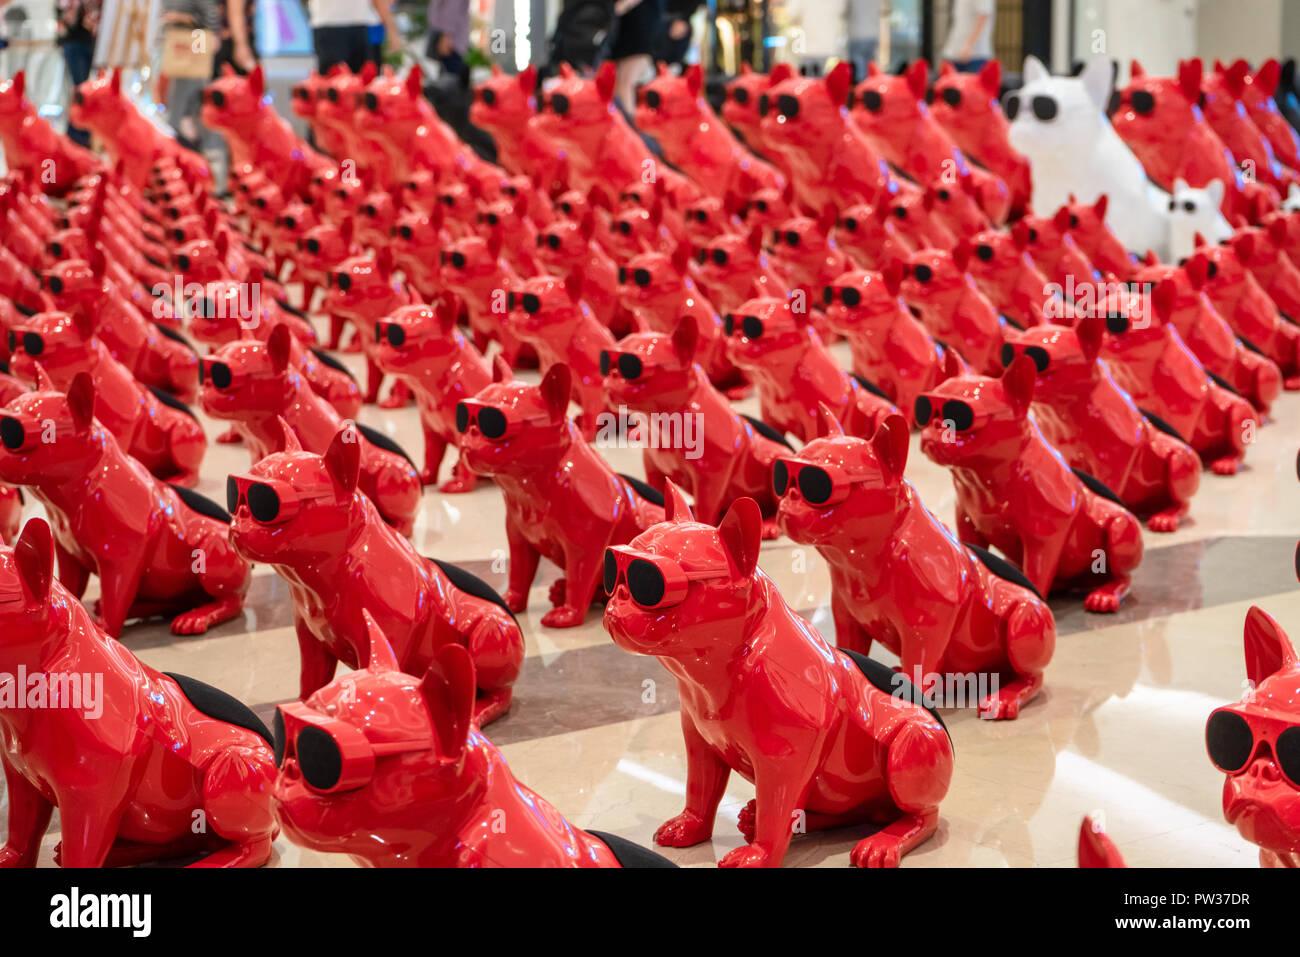 Companion Robots On Sale In China Stock Photos & Companion